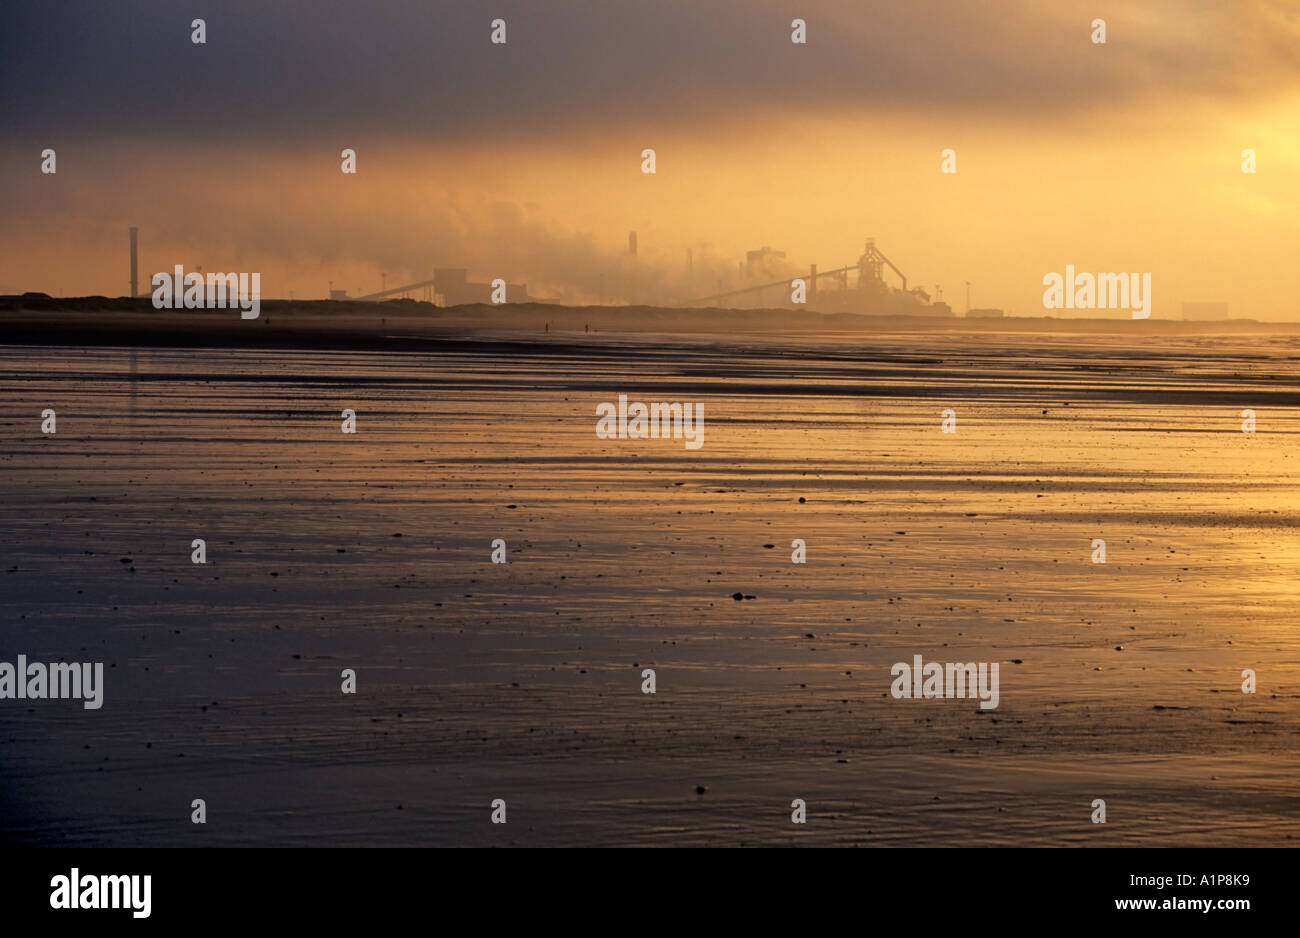 Teesside steelworks at sunset, Redcar, Cleveland, England - Stock Image